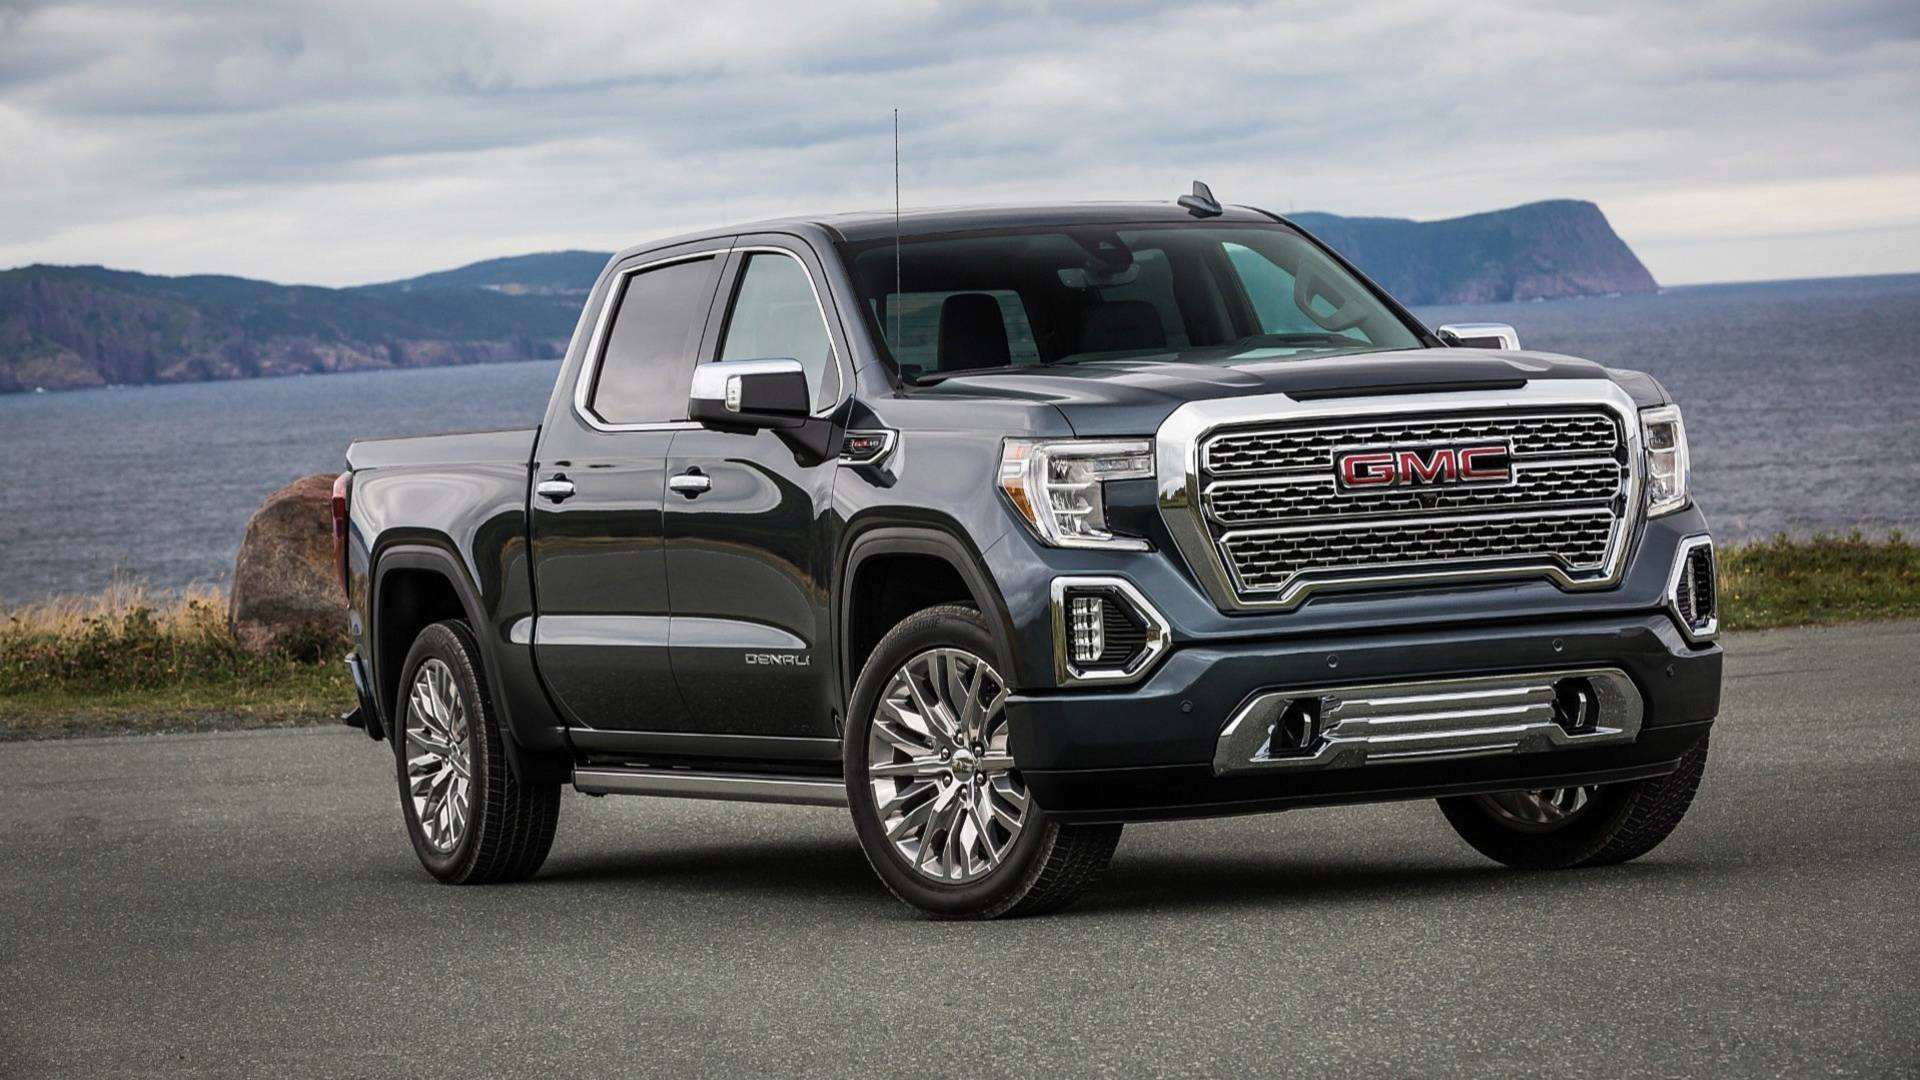 75 All New Tailgate On 2019 Gmc Sierra First Drive Configurations for Tailgate On 2019 Gmc Sierra First Drive